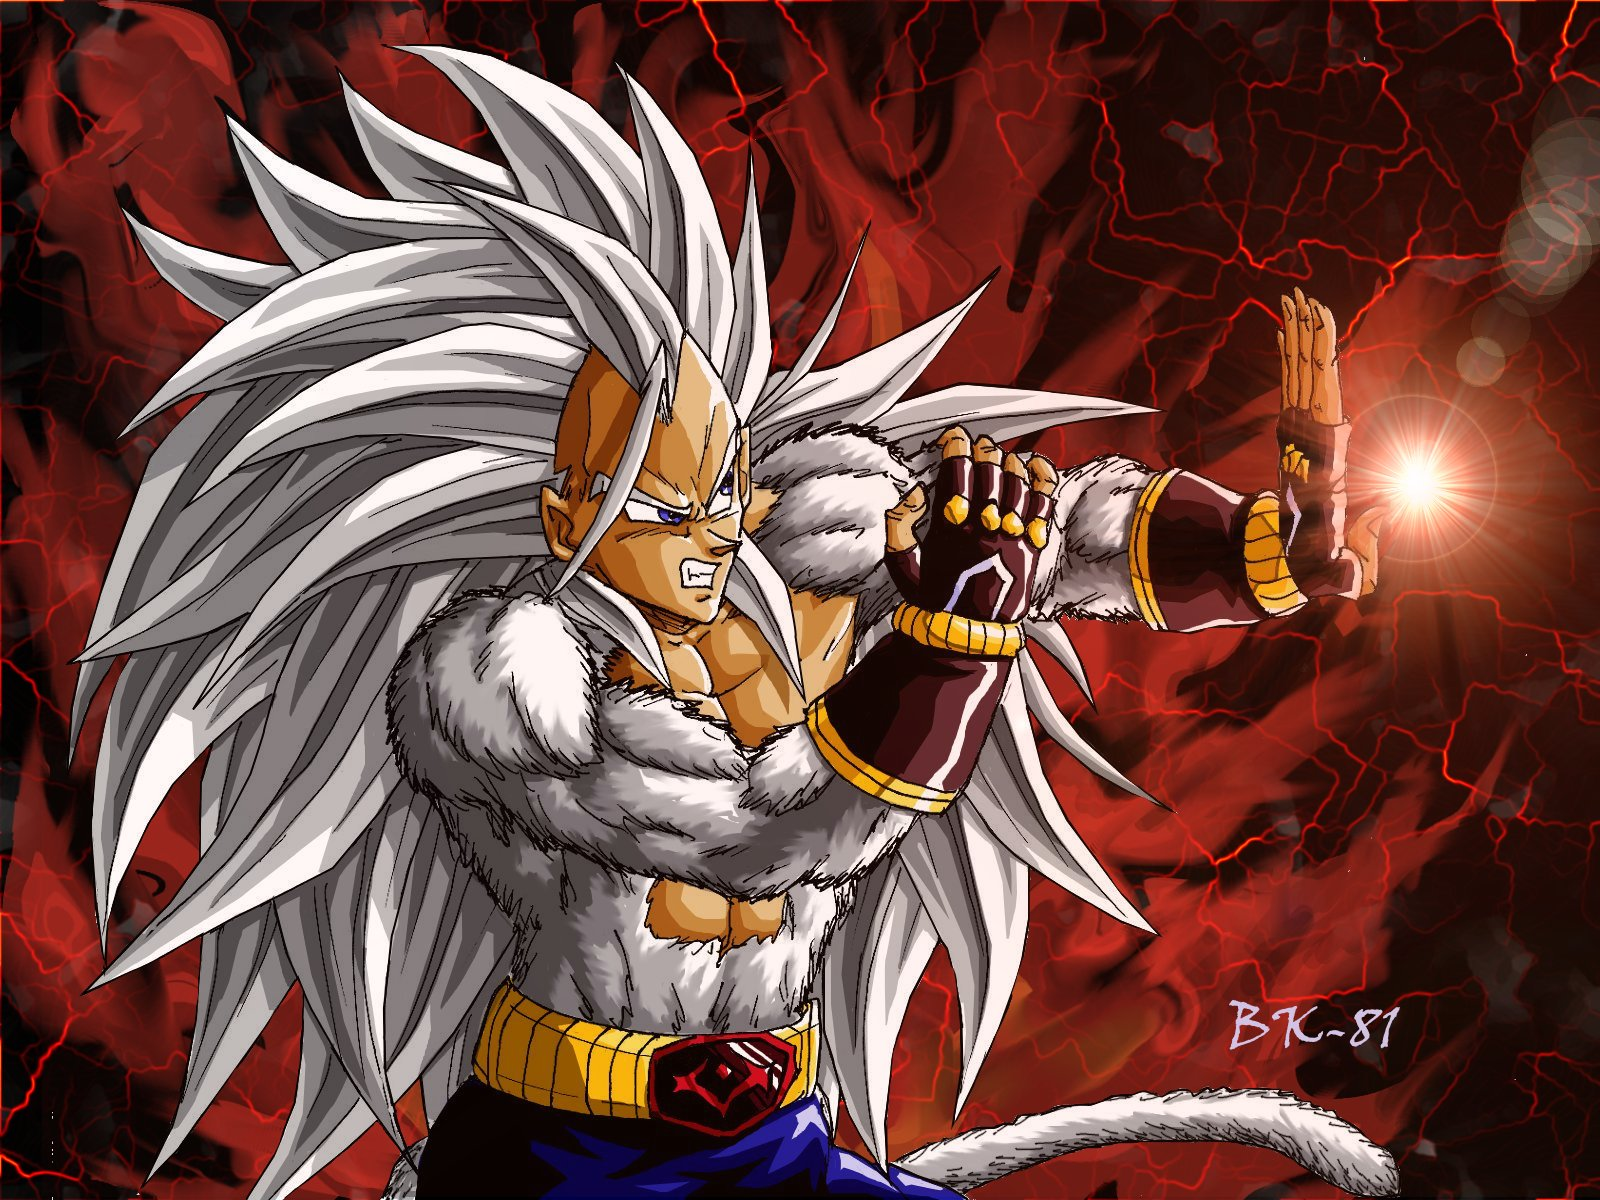 Download Dragon Ball Z Goku Super Saiyan 5 Wallpapers Gallery Dragon Ball Z Goku Super Saiyan 6 Wallpapers